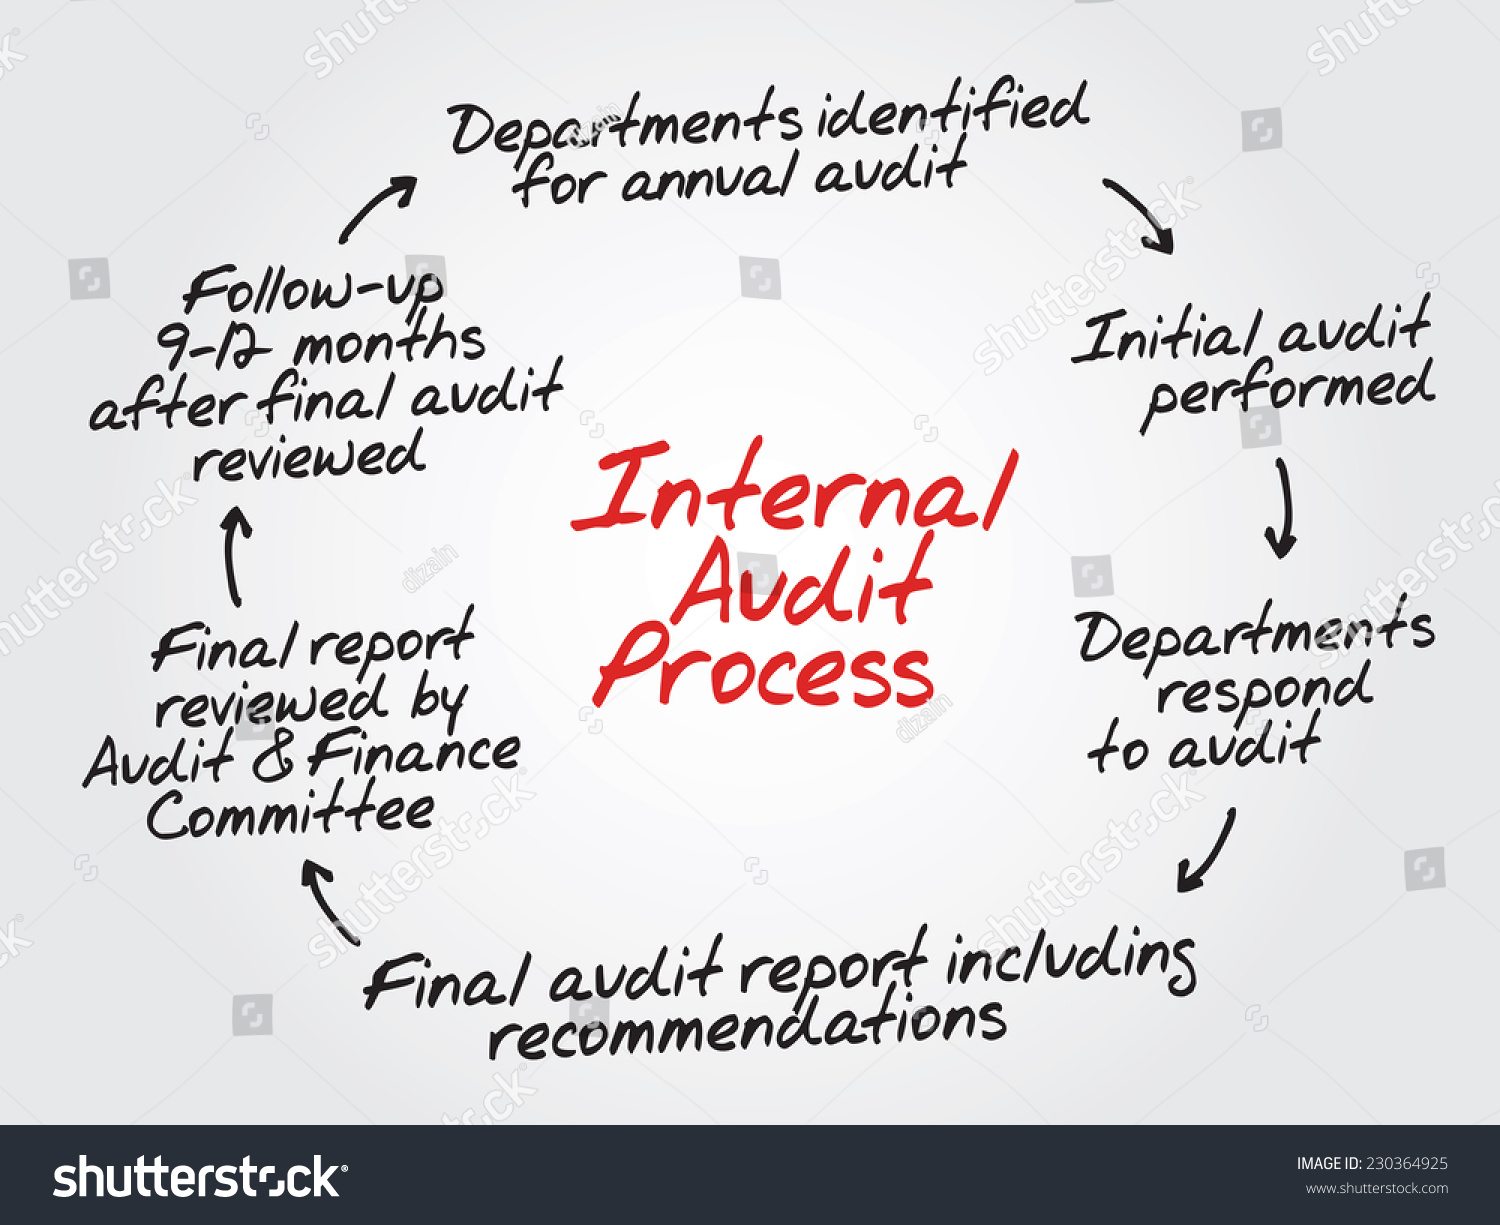 external auditing risk categories Areas and degree of risk - the audit should assess how risks are identified and how any necessary changes are made to ensure that all safety standards are met (external auditing) categories: safety regulations monitoring & oversight.